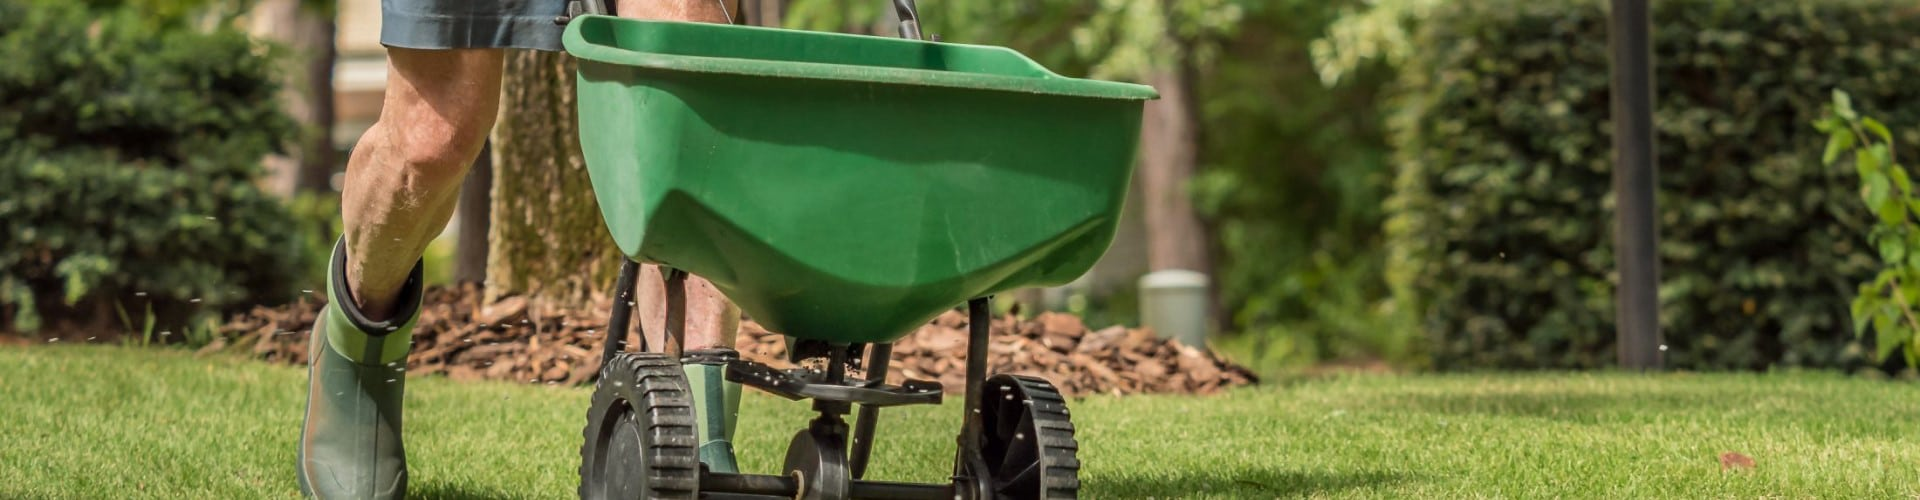 8 Best Commercial Fertilizer Spreaders – Reviews and Buying Guide